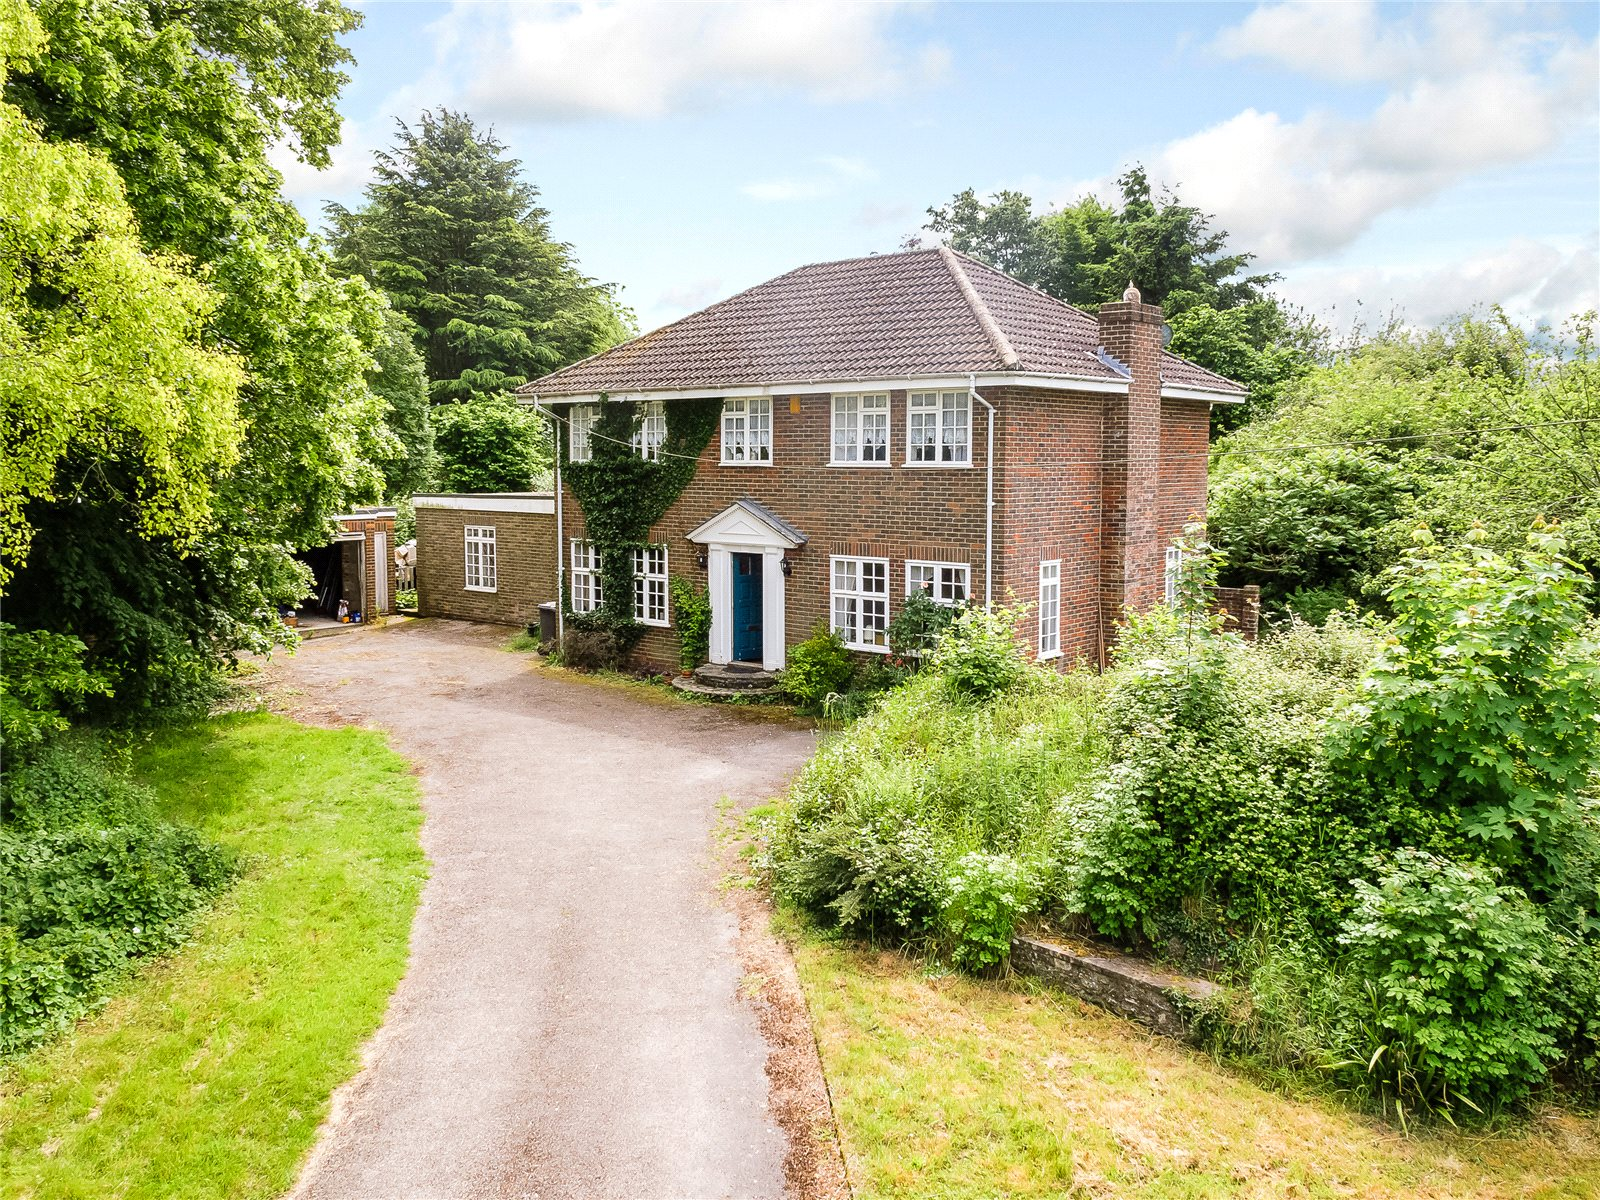 Villa per Vendita alle ore Wingate Lane, Long Sutton, Hook, Hampshire, RG29 Hook, Inghilterra